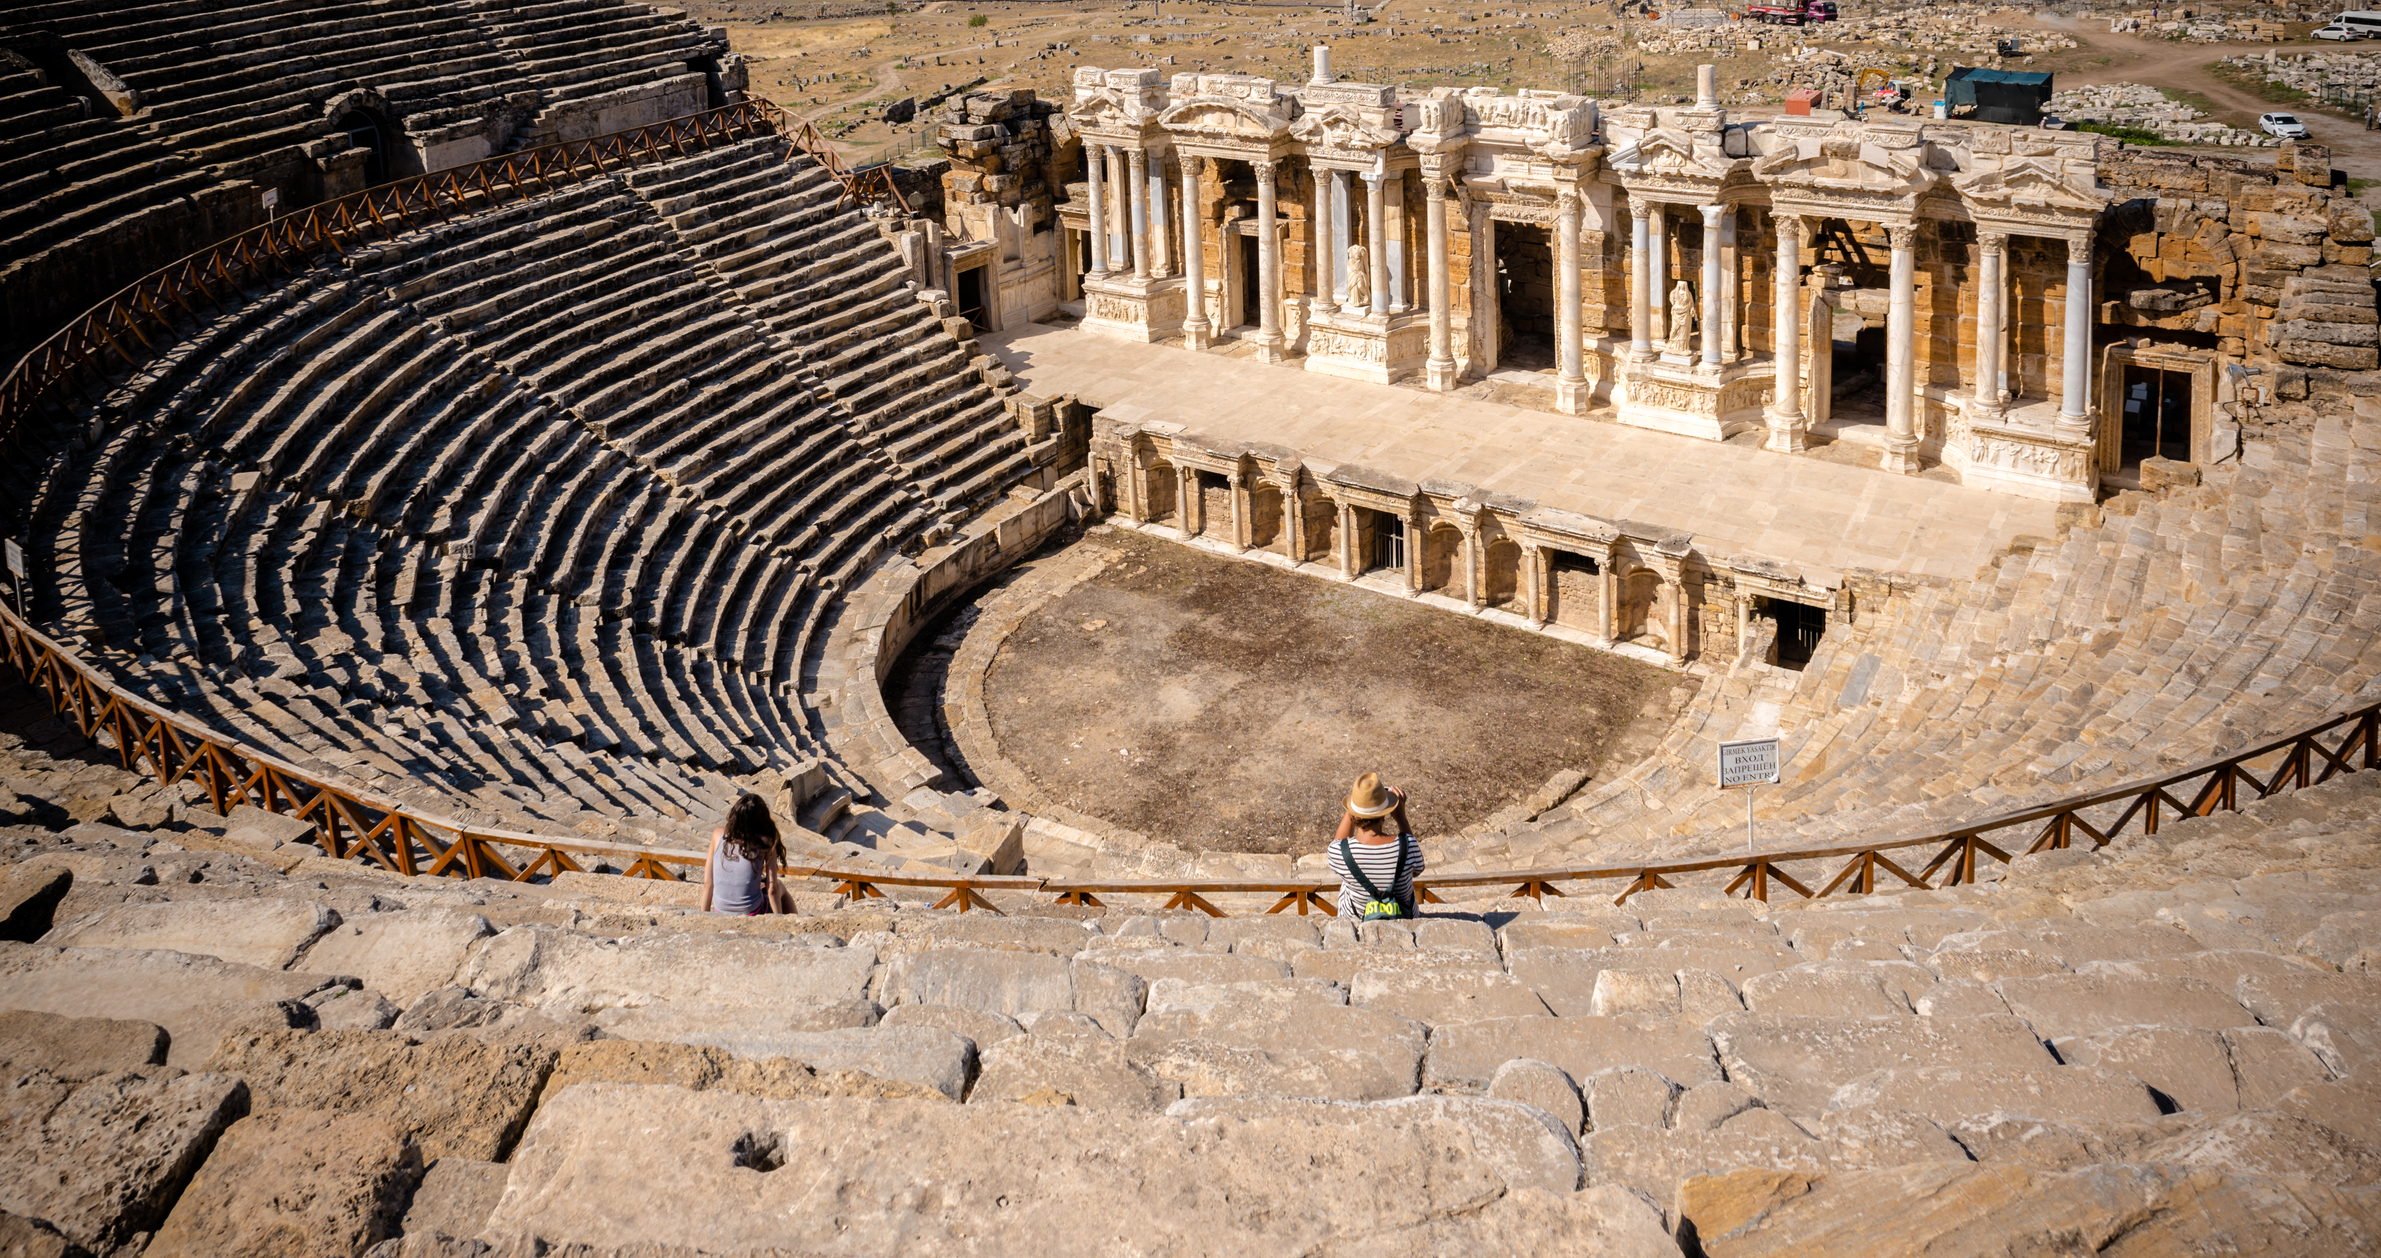 The ruins of Antique Theater in ancient Greek city Hierapolis, Pamukkale, Turkey